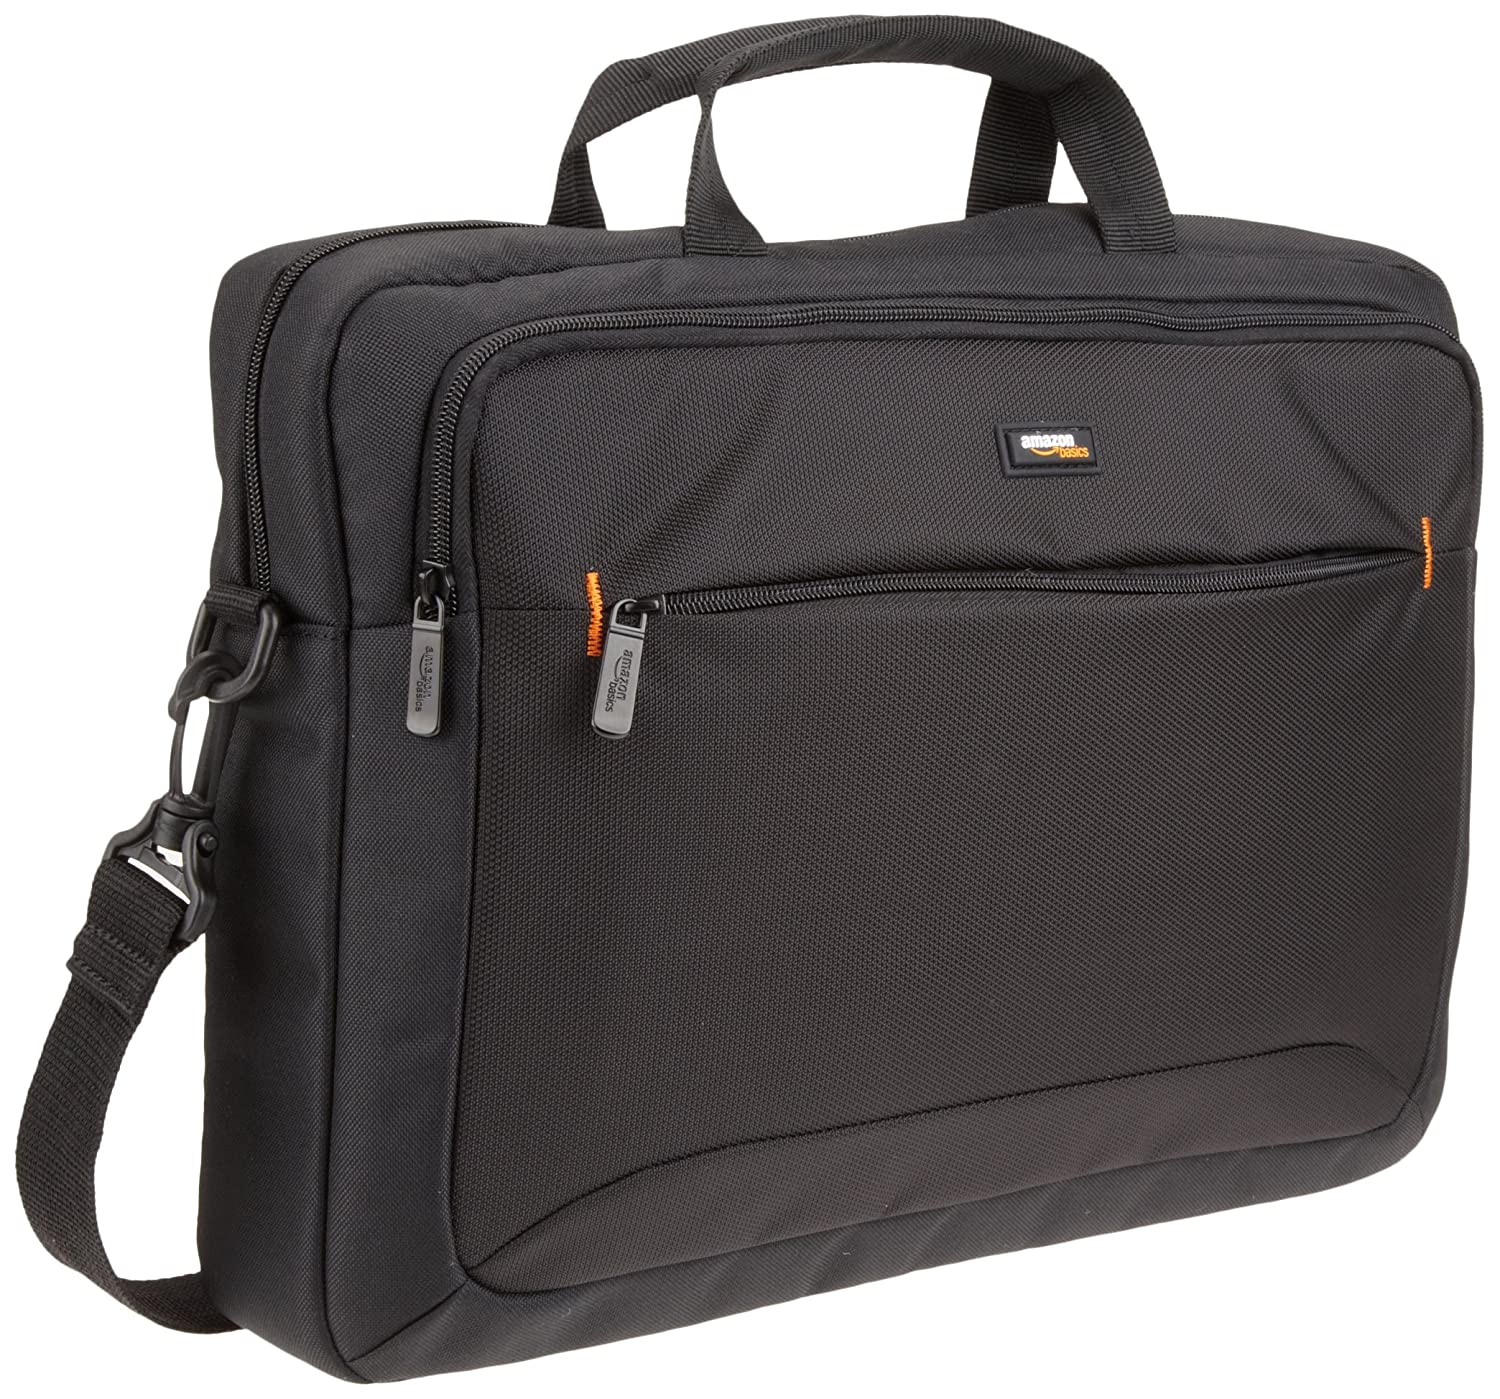 f11d196026 AmazonBasics - Borsa per tablet e portatile da 15.6 pollici: Amazon.it:  Informatica